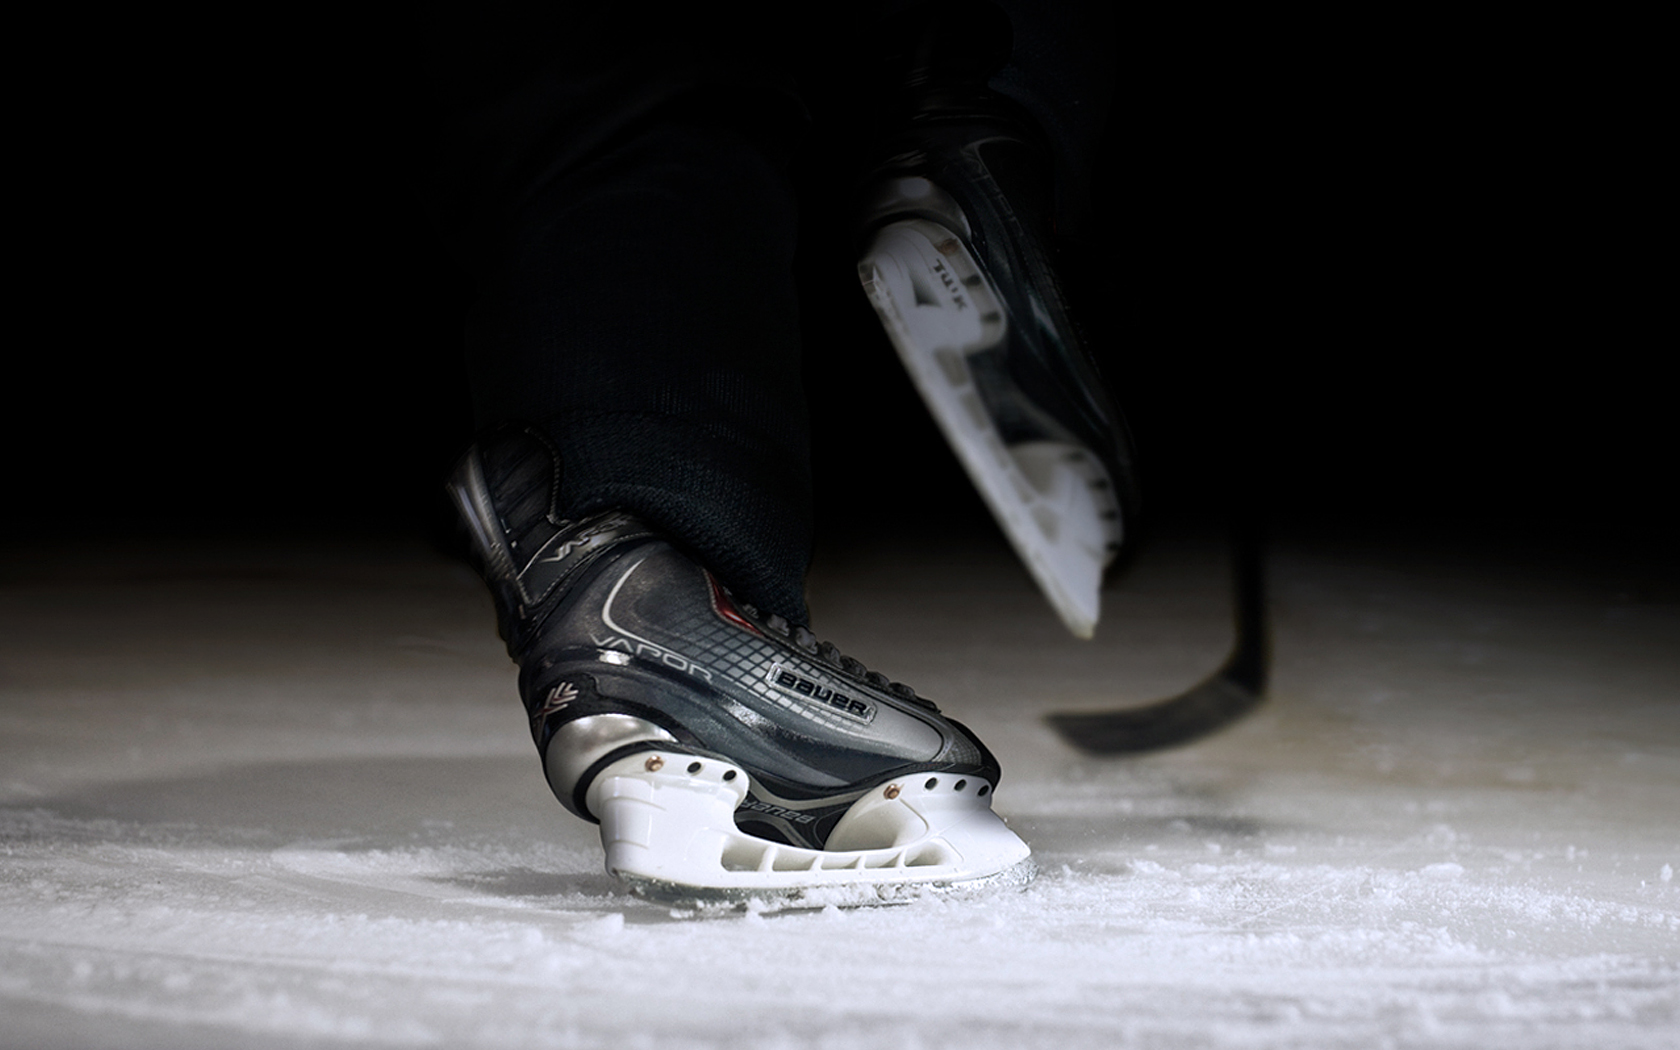 httpwwwfreecodesourcecomwallpaperswallpaperBauer On The Ice 1680x1050